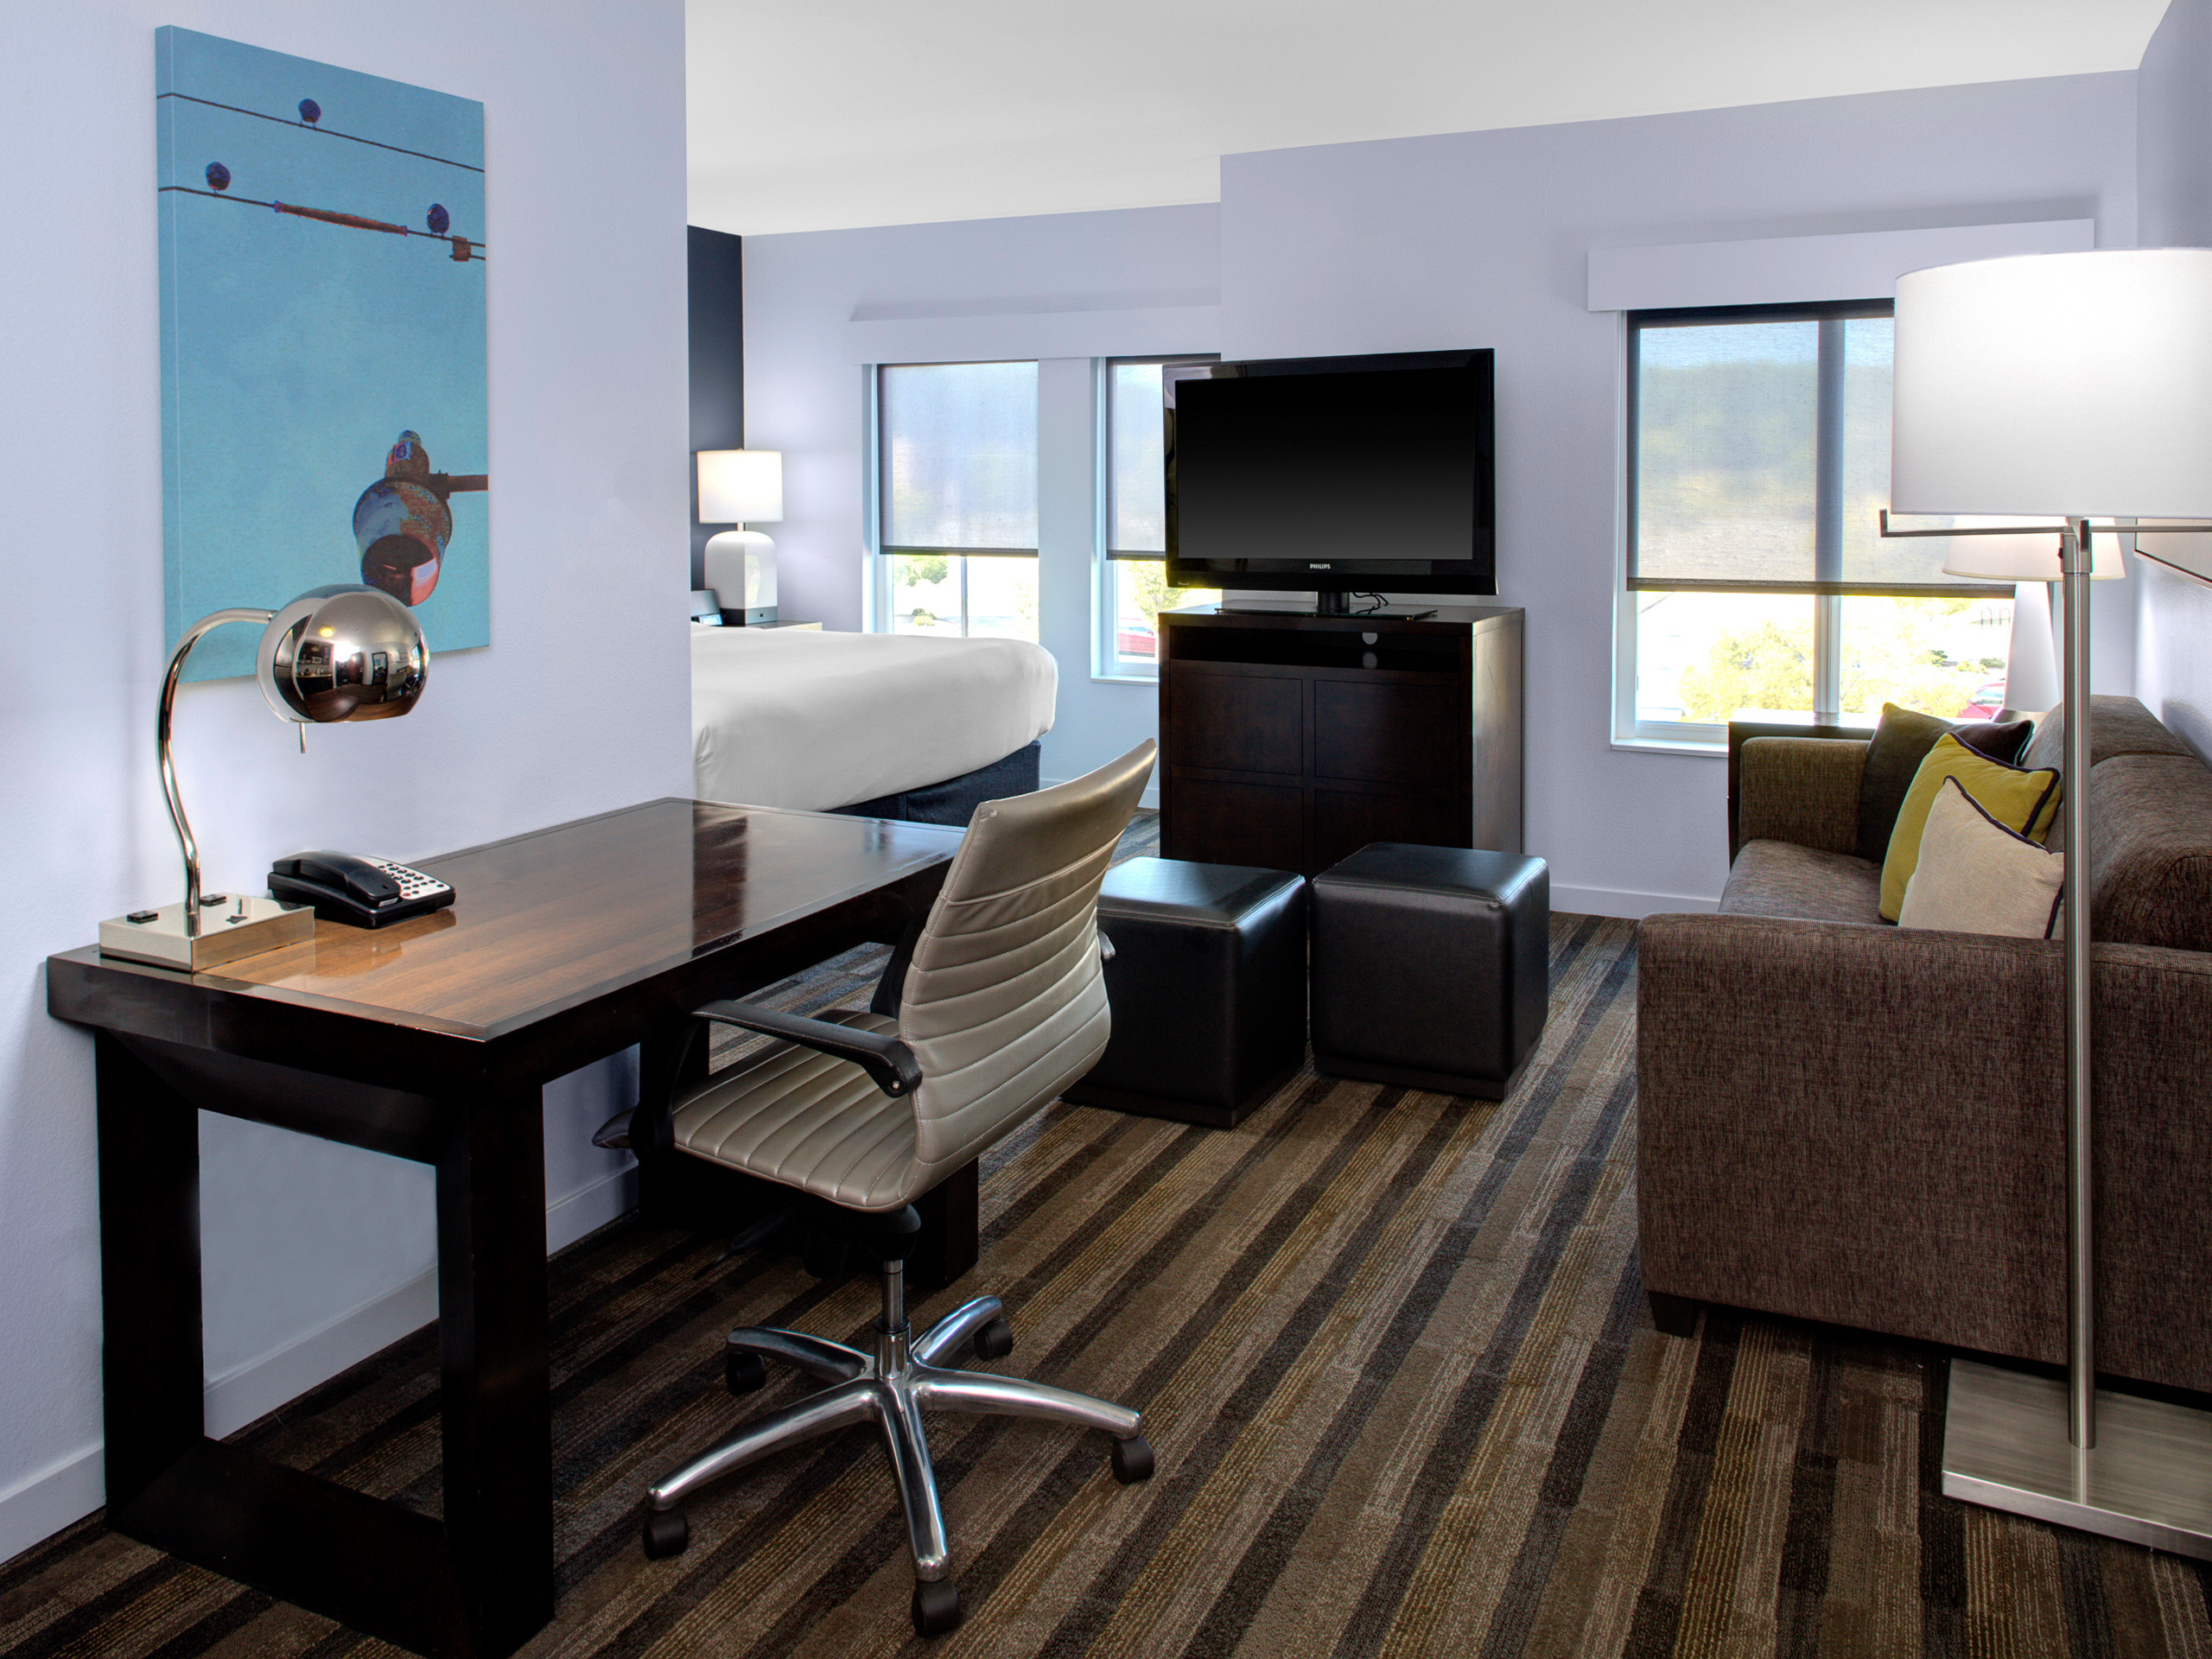 hardwood floor cleaning raleigh of extended stay hotel near raleigh durham airport hyatt house throughout extended stay hotel near raleigh durham airport hyatt house raleigh durham airport